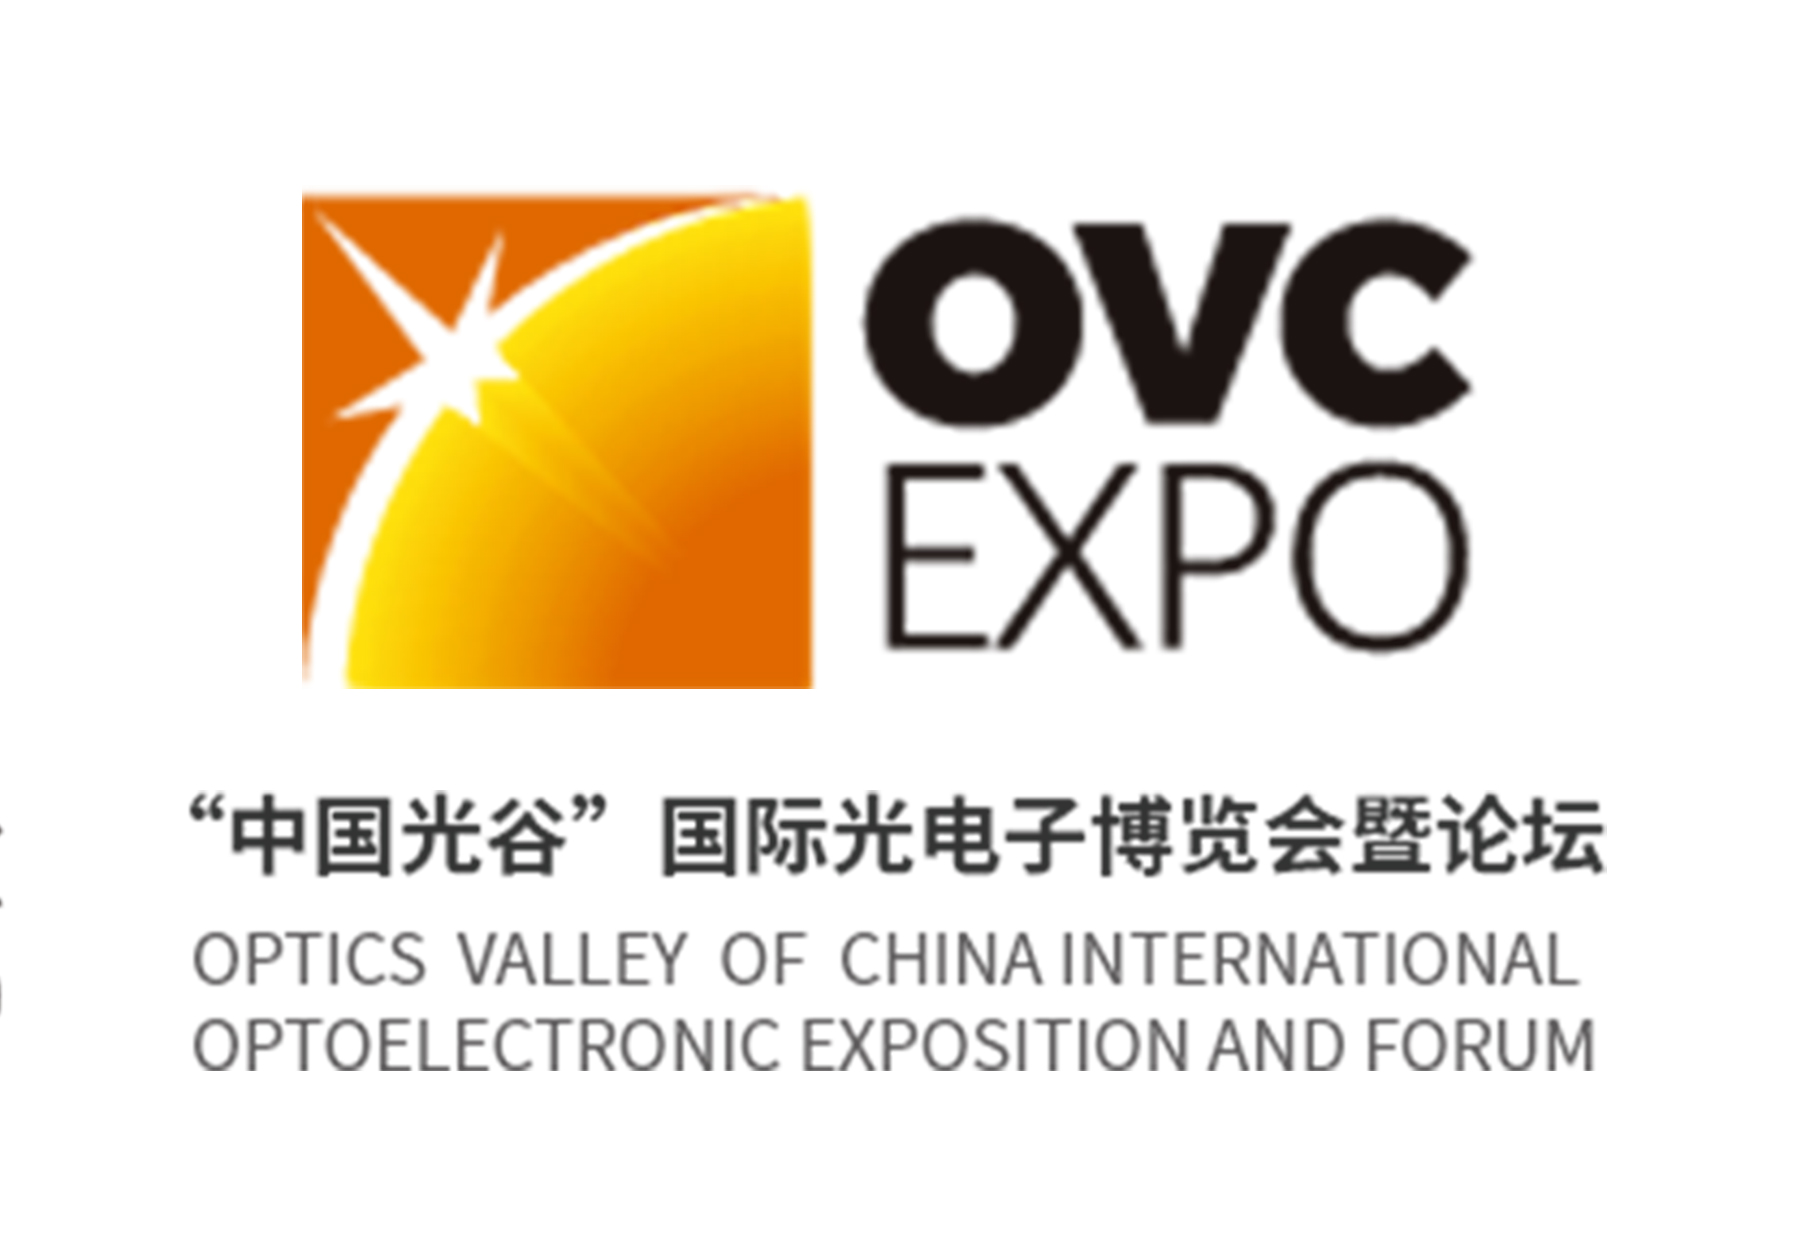 2020 OPTICS VALLEY OF CHINA INTERNATIONAL OPTOELECTRONIC EXPOSITION